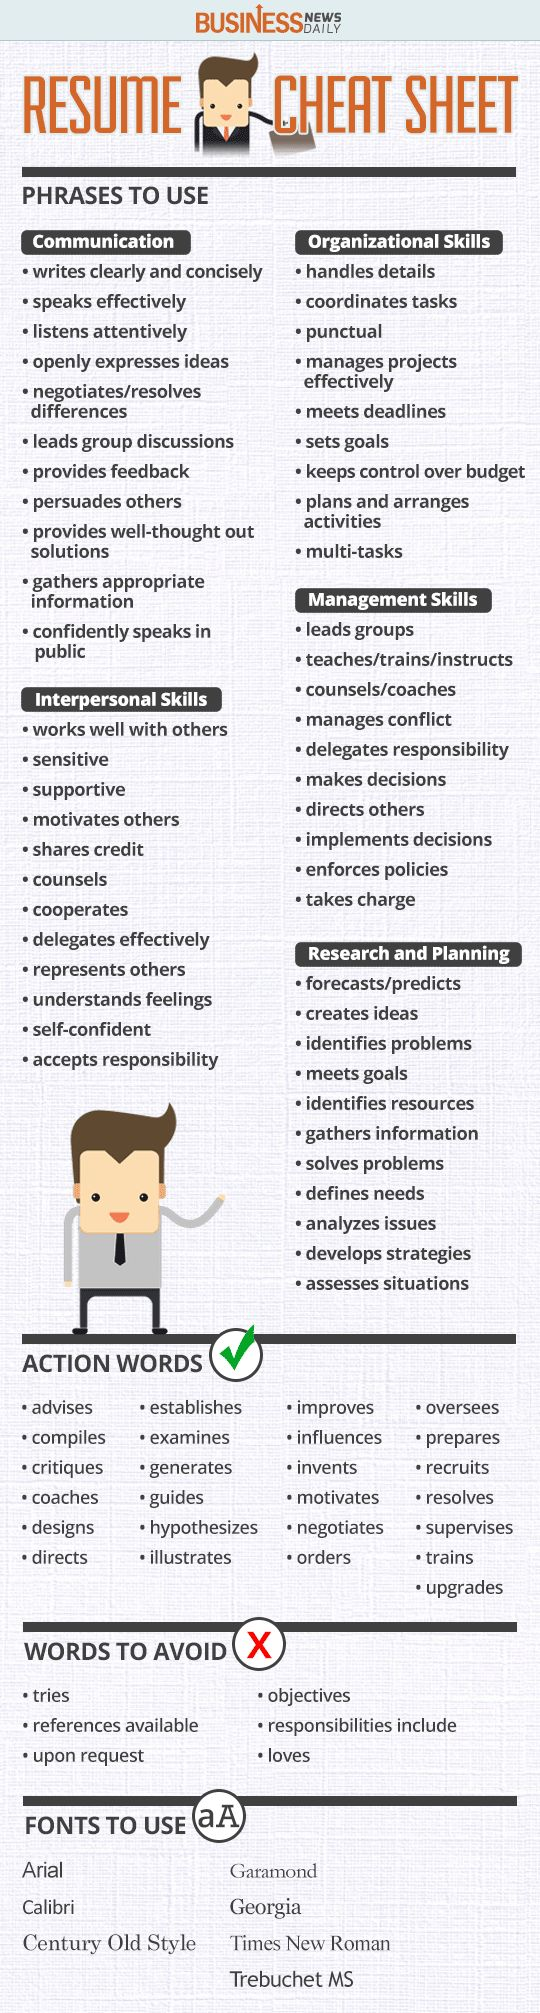 Opposenewapstandardsus  Wonderful  Ideas About Resume On Pinterest  Cv Format Resume Cv And  With Handsome Resume Cheat Sheet Infographic Andrews Almost Done With A Complete Unit On Employment Which With Delightful Resume Folder Also Free Resume Templates Word In Addition Latex Resume And Project Management Resume As Well As Resume Summary Statement Additionally Accountant Resume From Pinterestcom With Opposenewapstandardsus  Handsome  Ideas About Resume On Pinterest  Cv Format Resume Cv And  With Delightful Resume Cheat Sheet Infographic Andrews Almost Done With A Complete Unit On Employment Which And Wonderful Resume Folder Also Free Resume Templates Word In Addition Latex Resume From Pinterestcom